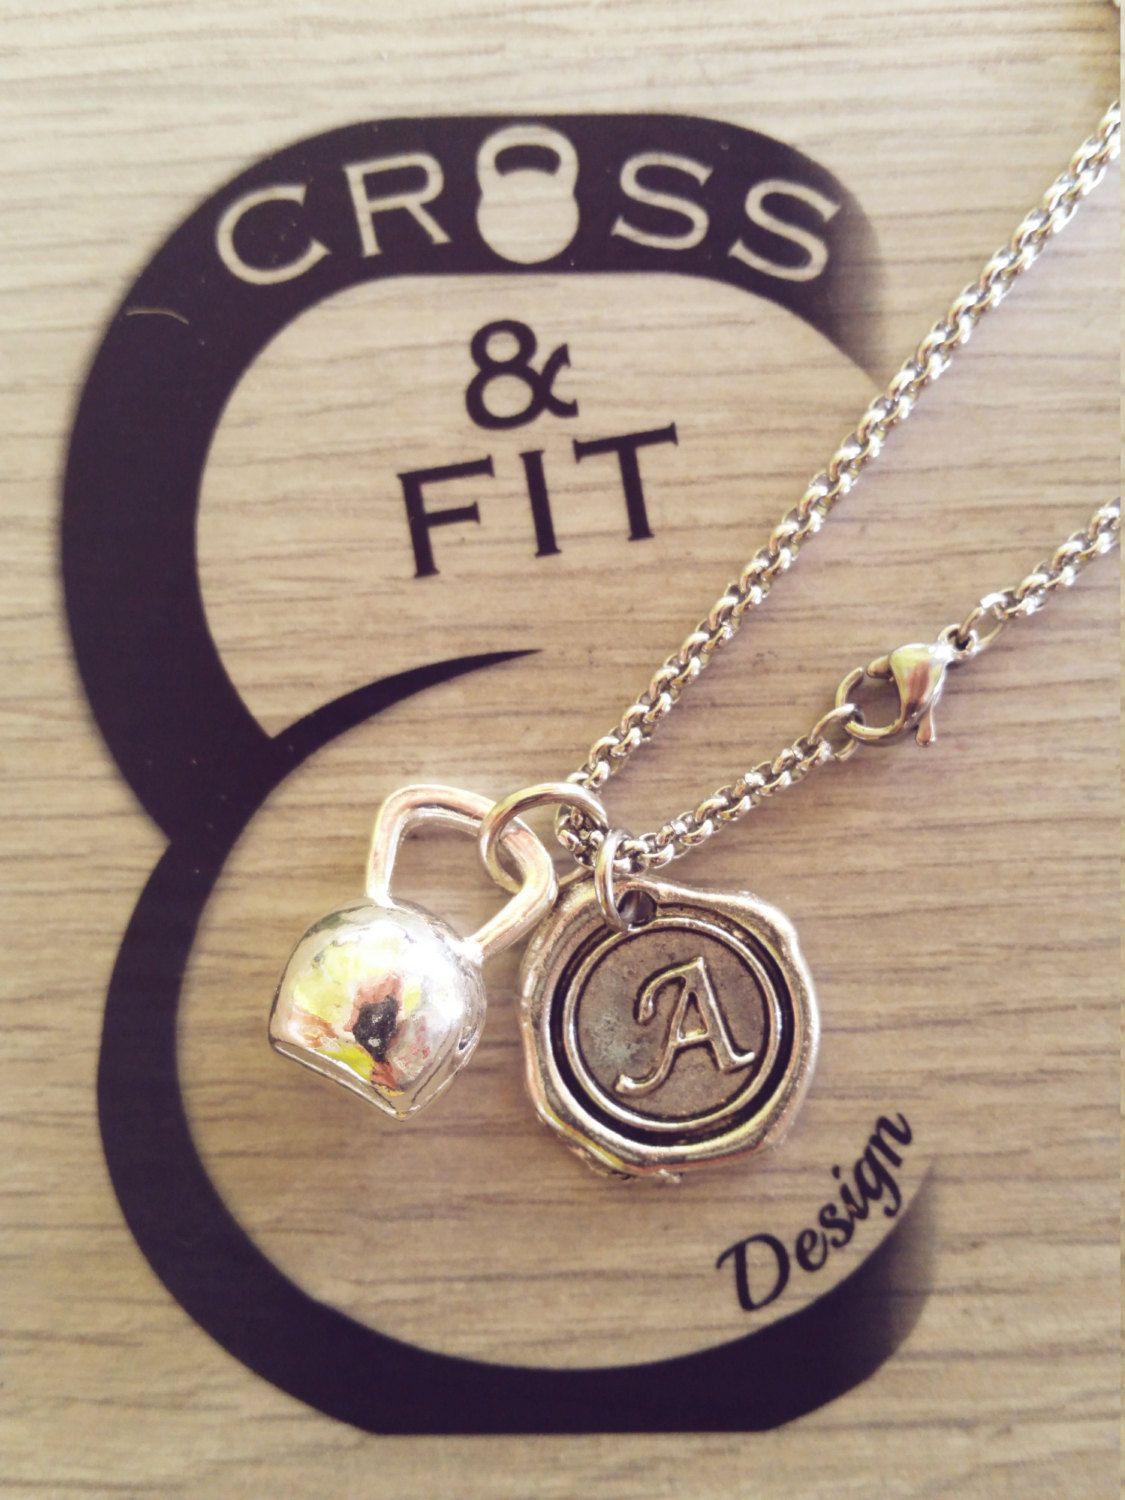 Kettlebell & Initial Necklace. Collar Kettlebell  Y Letra.Collana Kettlebell e Iniziale.CrossFit,Fitness,initial charm,personalized charm de CrosseFitDesign en Etsy